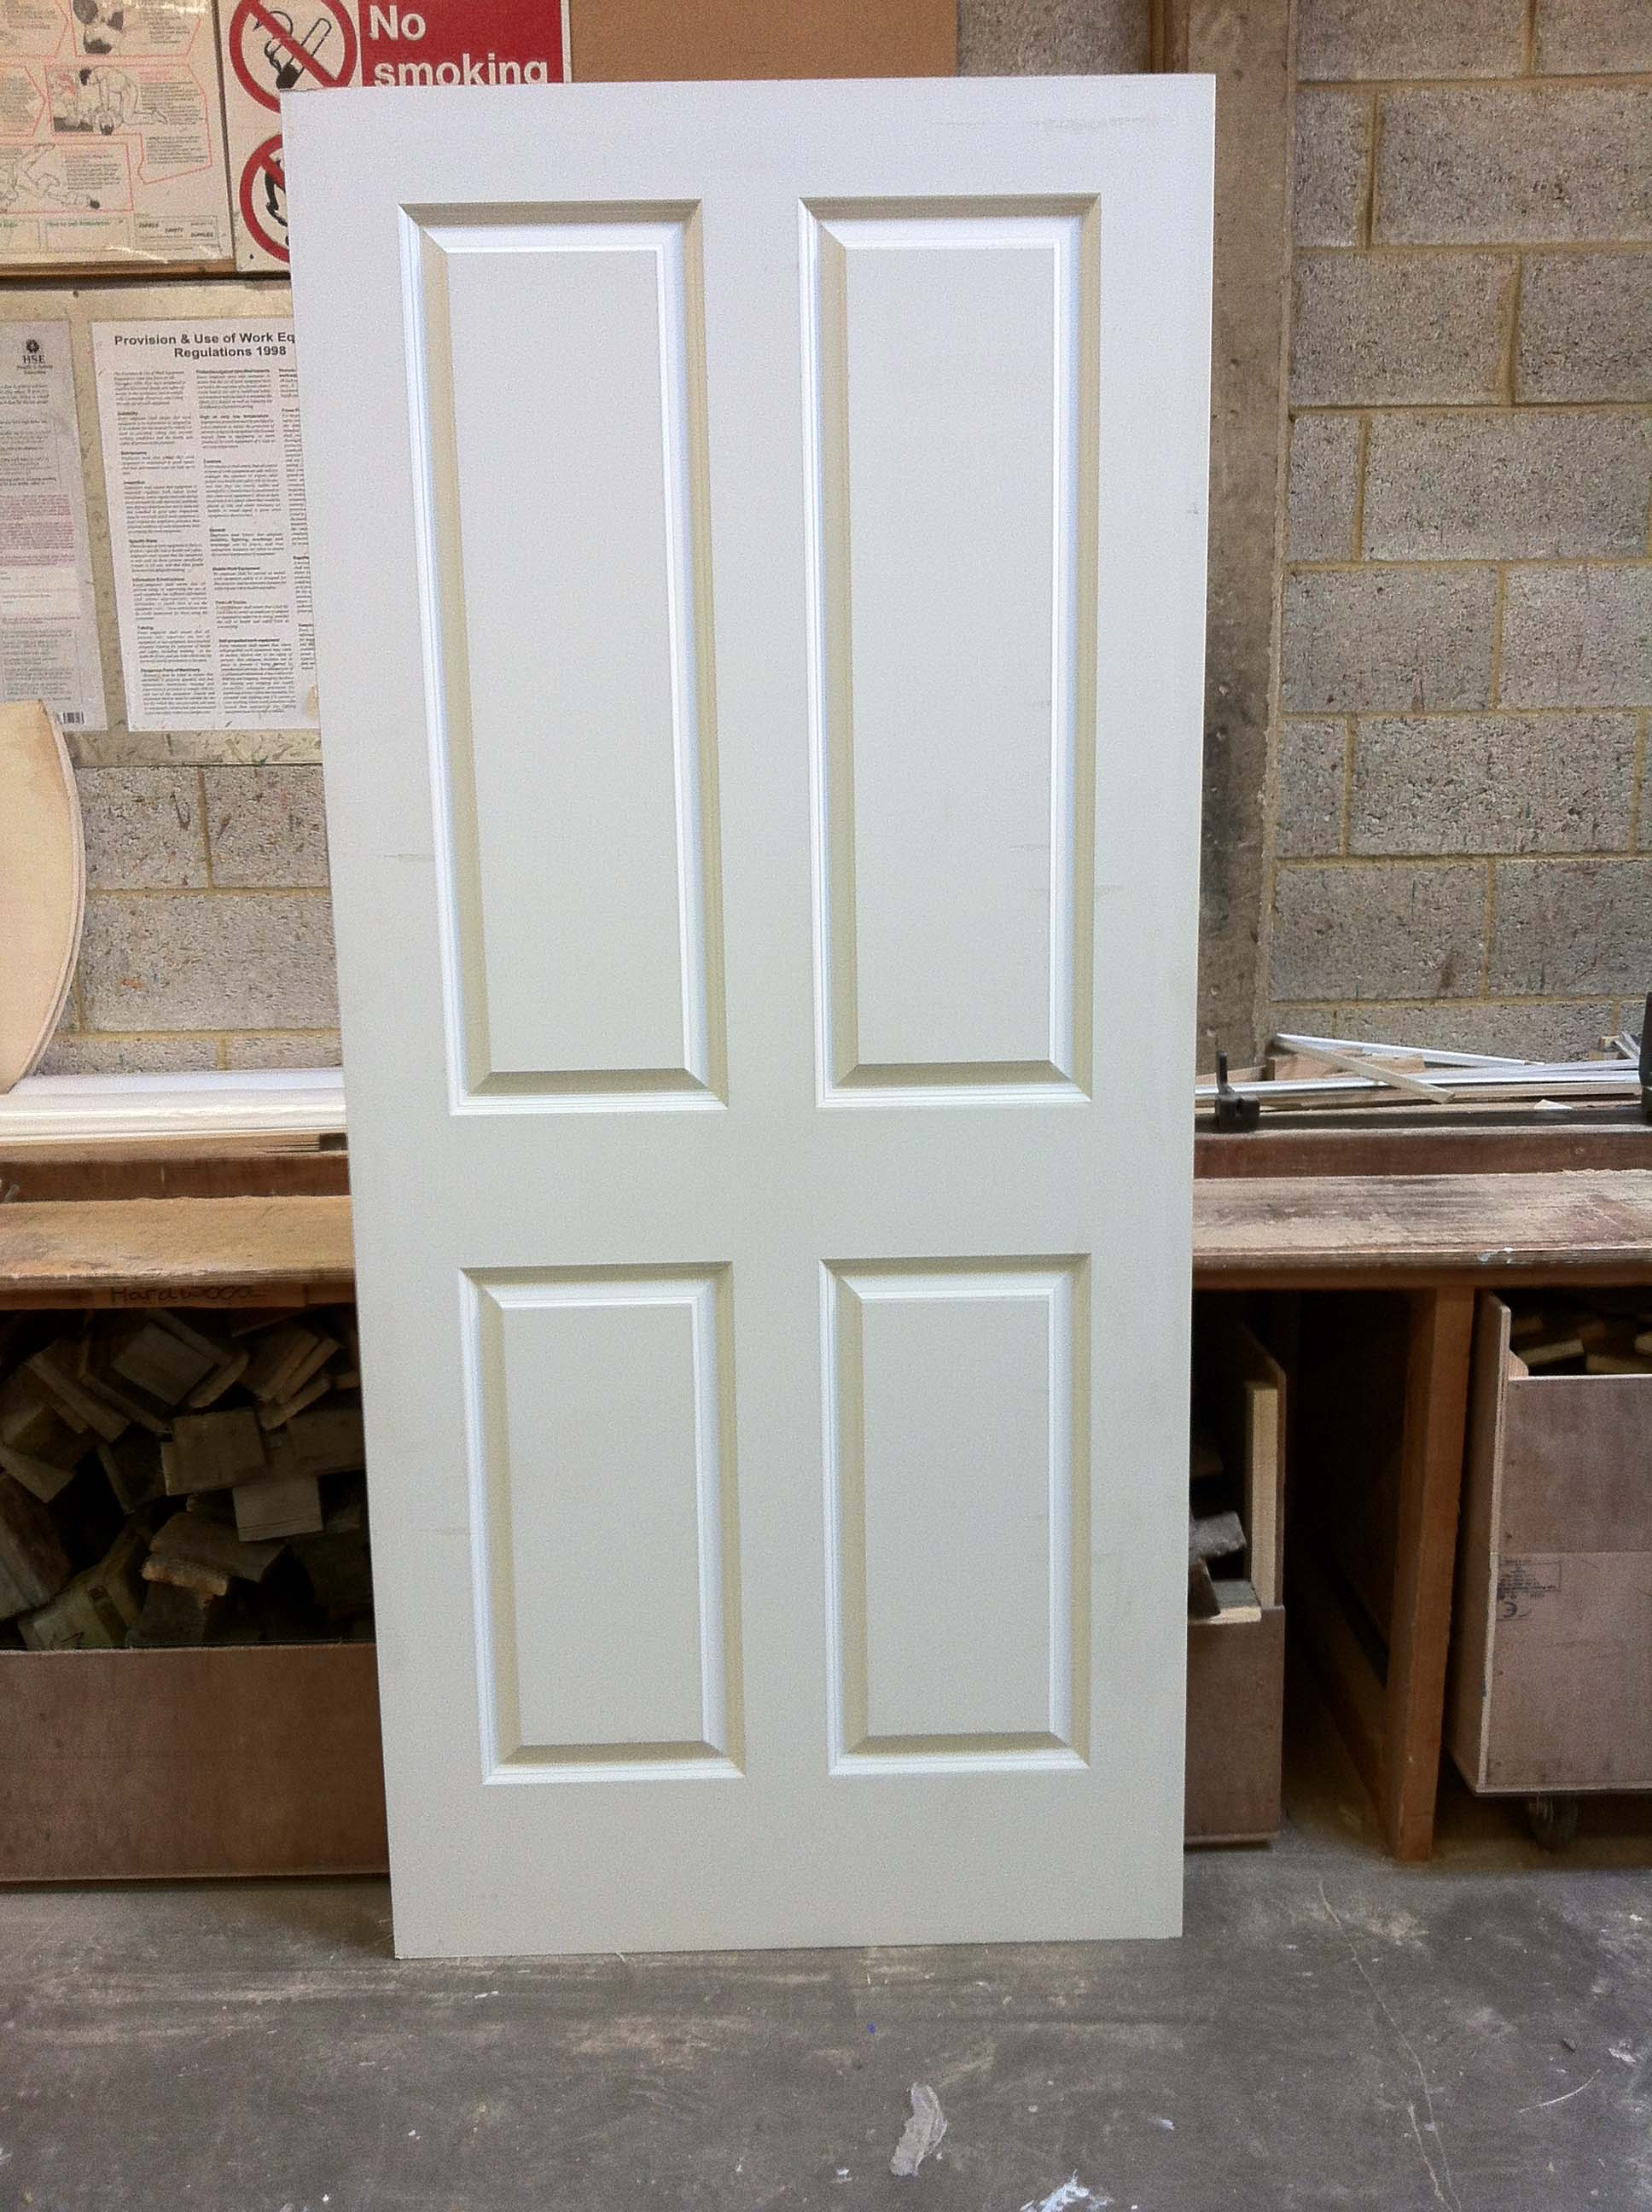 926mm x 2040mm x 44mm Premdor FD30 fire resistant panelled door £35.00 each including VAT Collection only